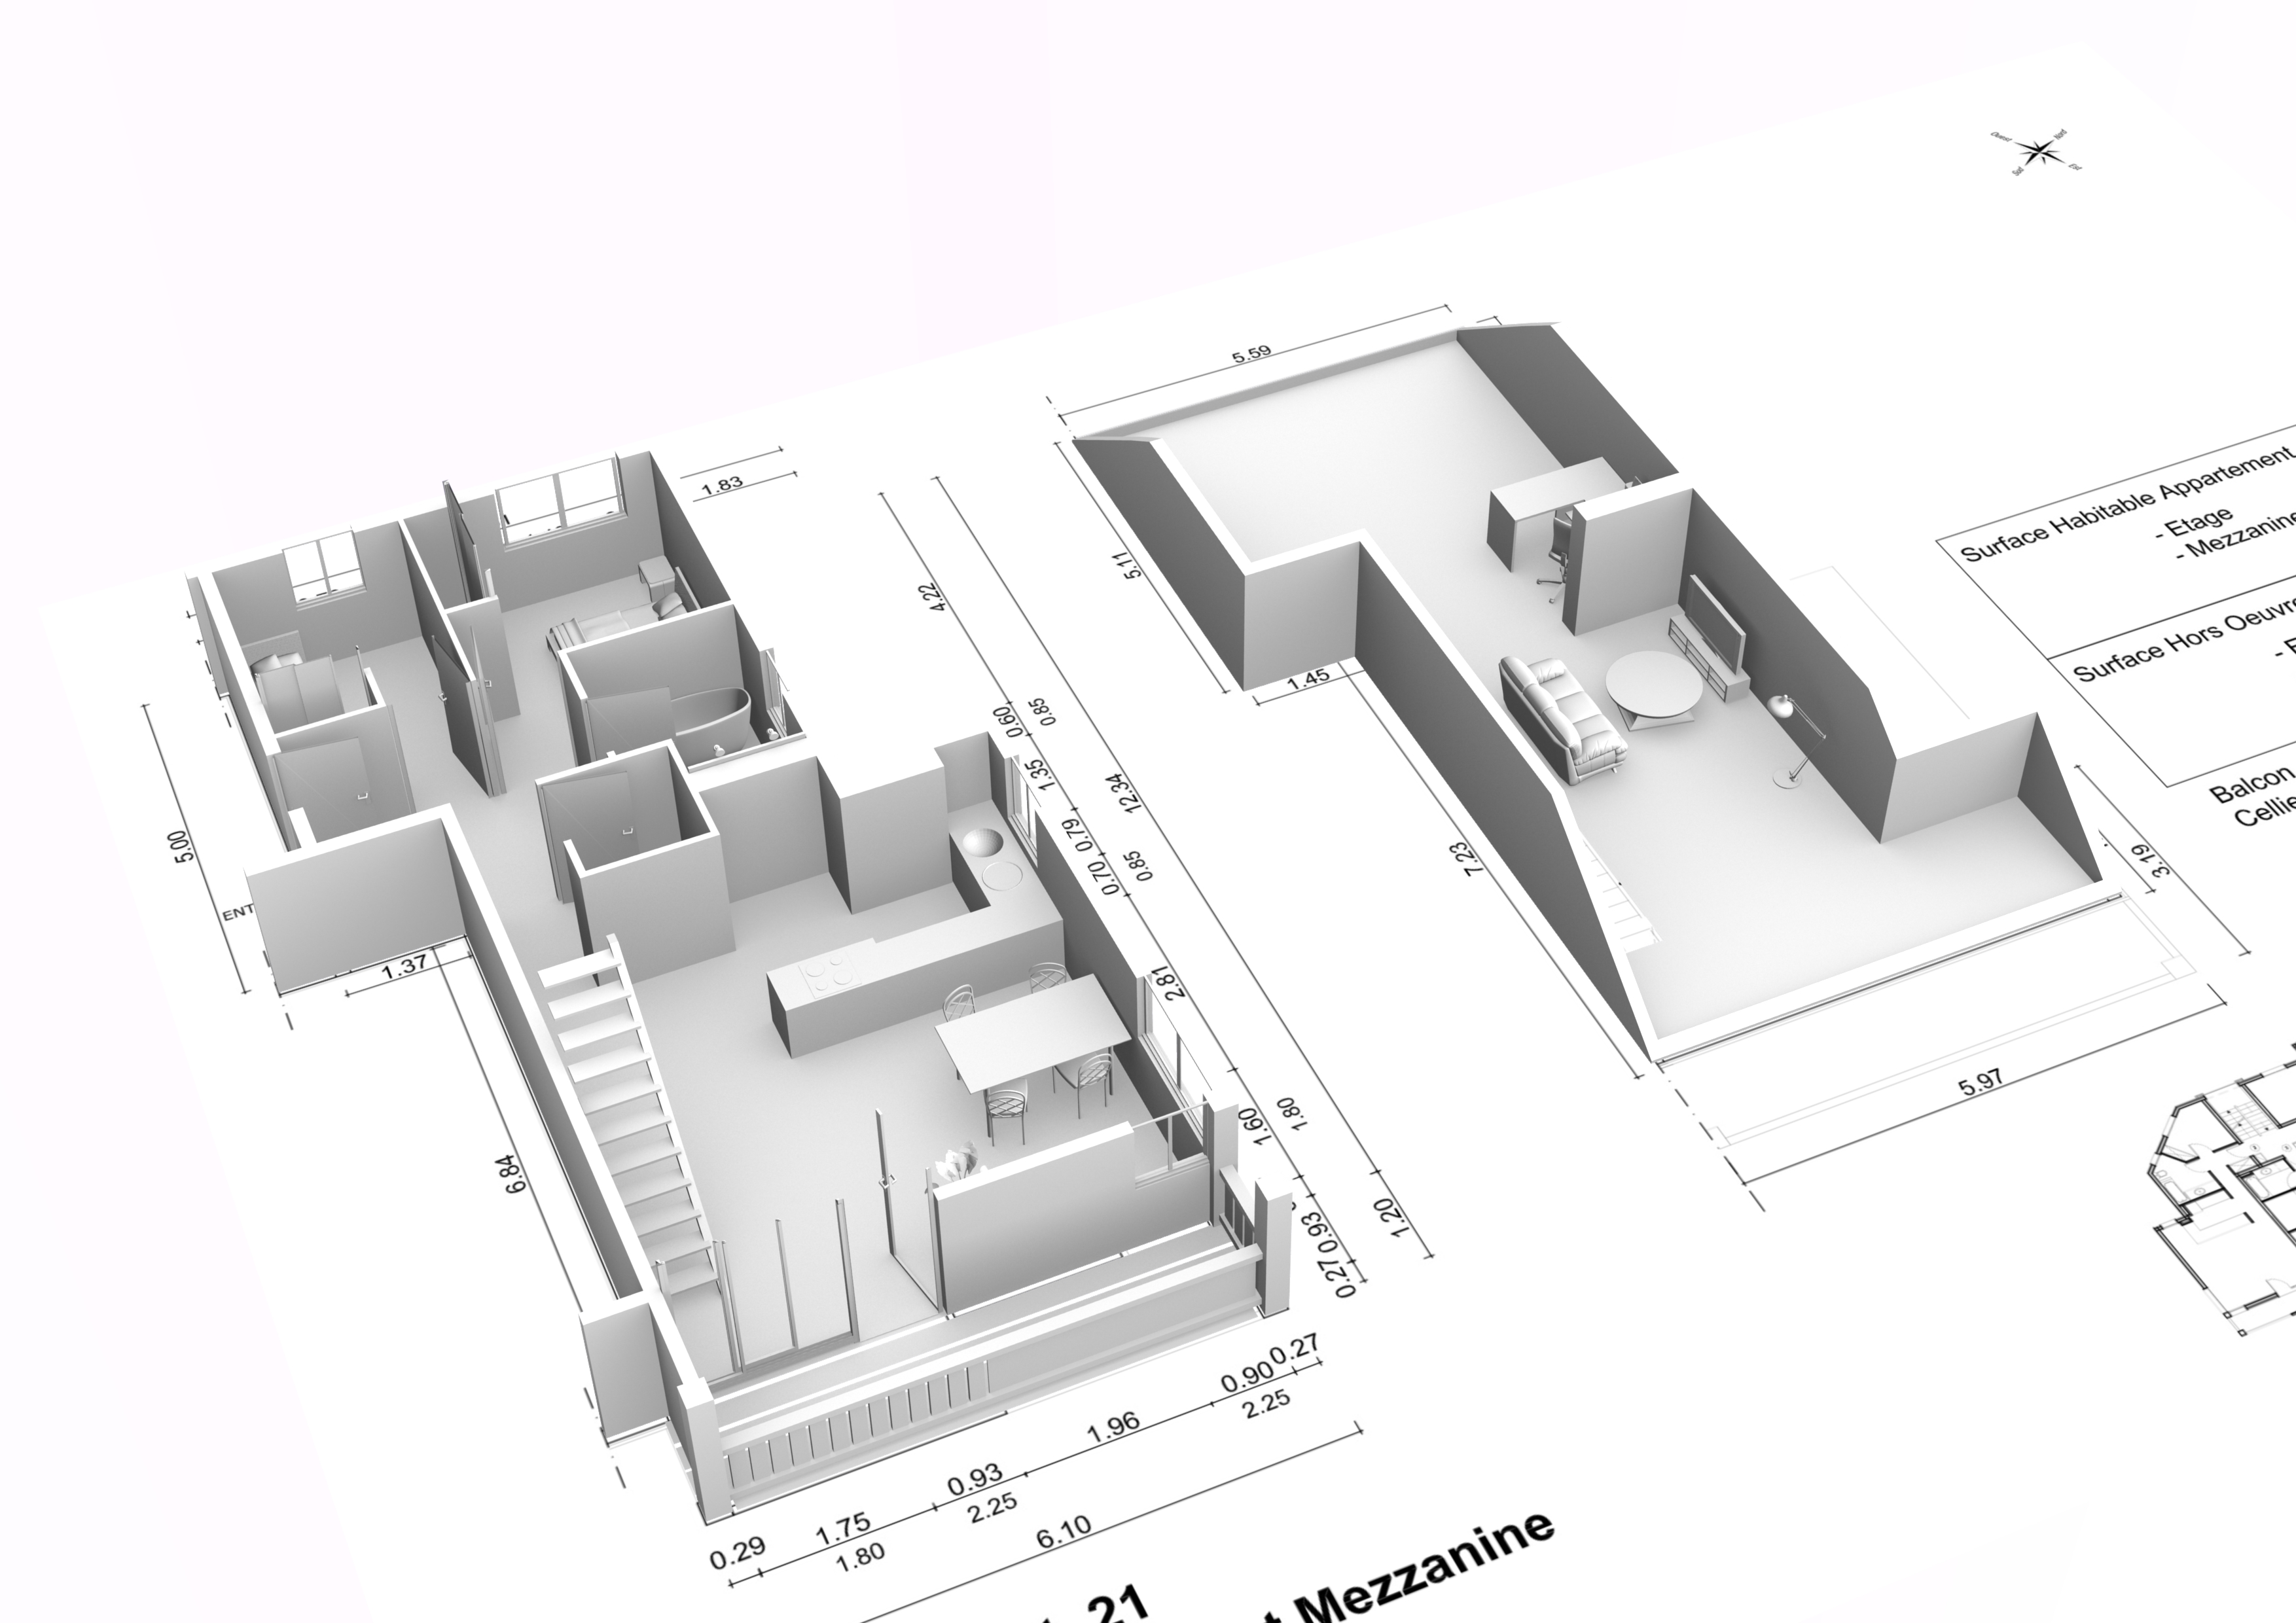 Perspectiviste illustrateur 3d architecture int rieur 3d - Plan architecte 3d ...